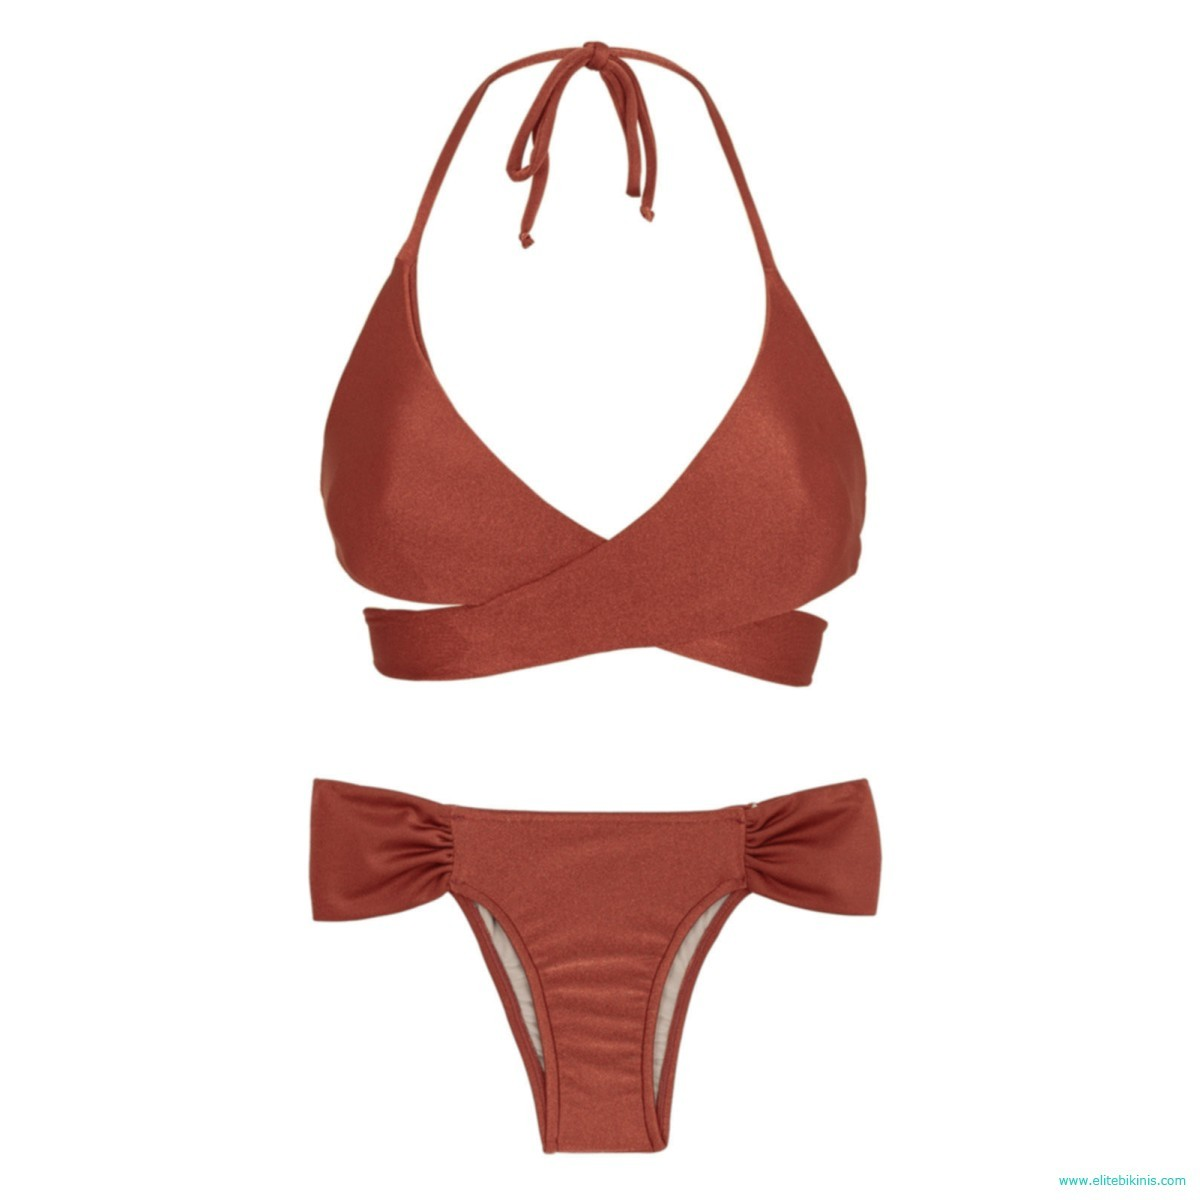 c21f754c01e Rio de Sol brings from Brazil this brand new red brazilian bikini model,  the Liquor Transpassado from 2019 collection. The top of Liquor  Transpassado bikini ...